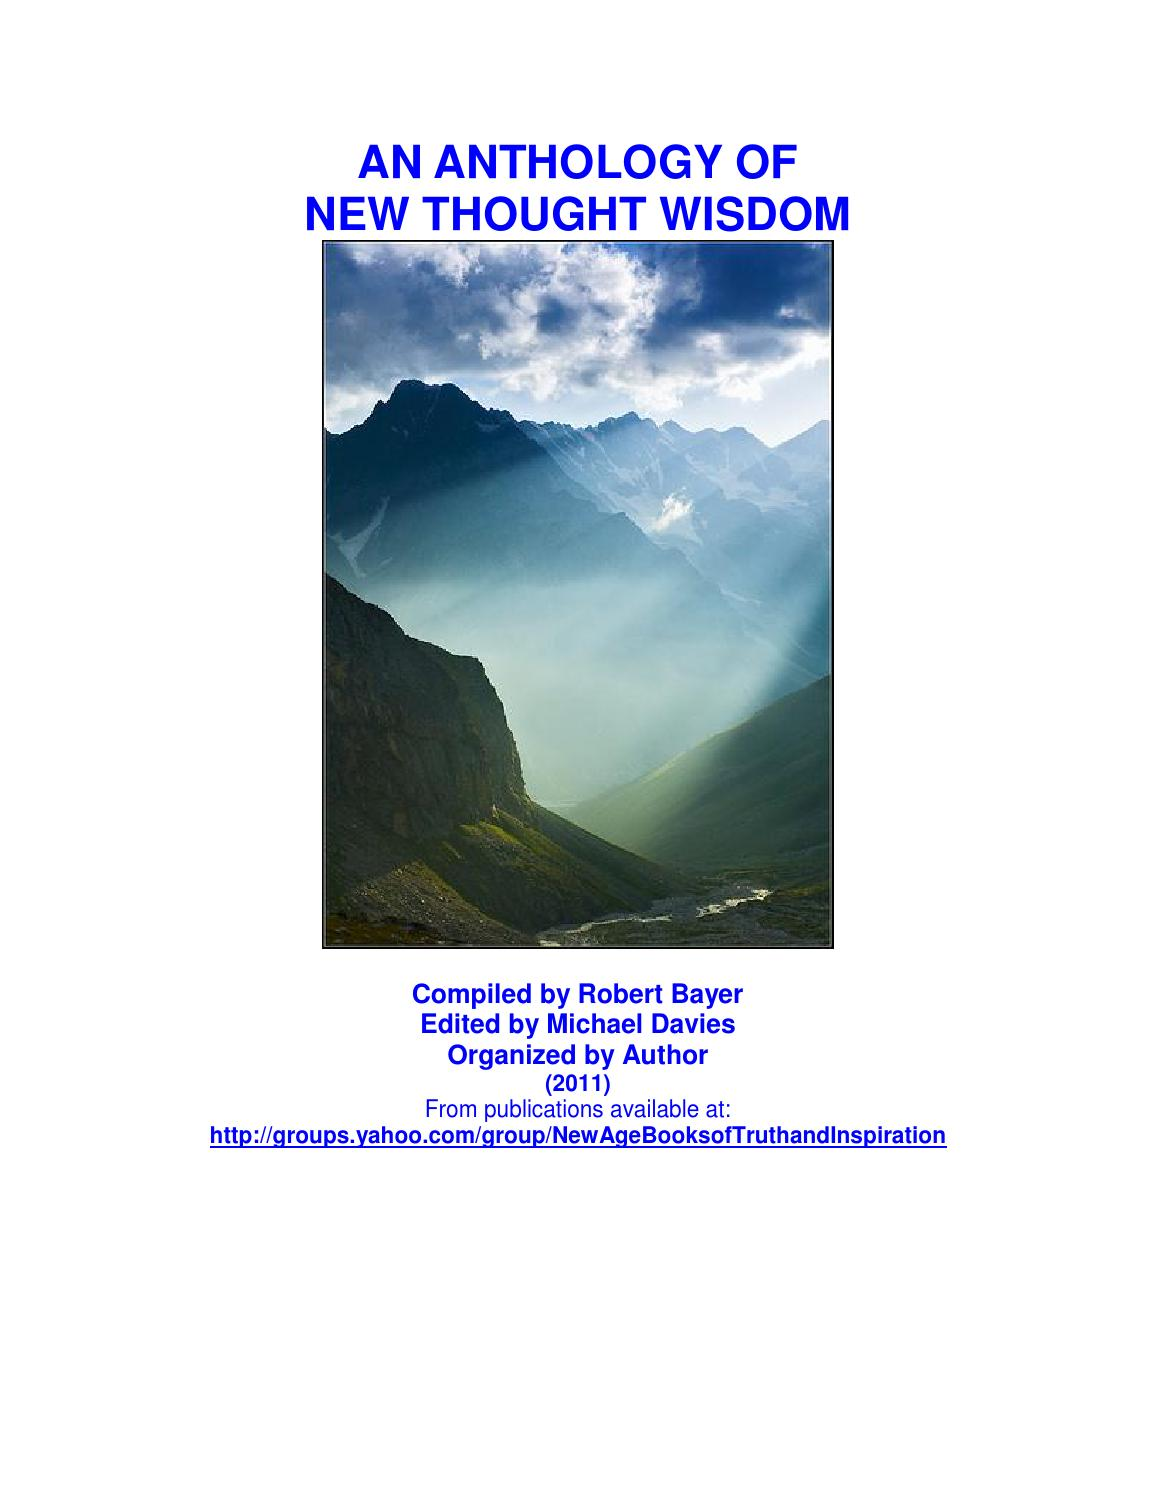 An Anthology of New Thought Wisdom - Bayer - Davies by